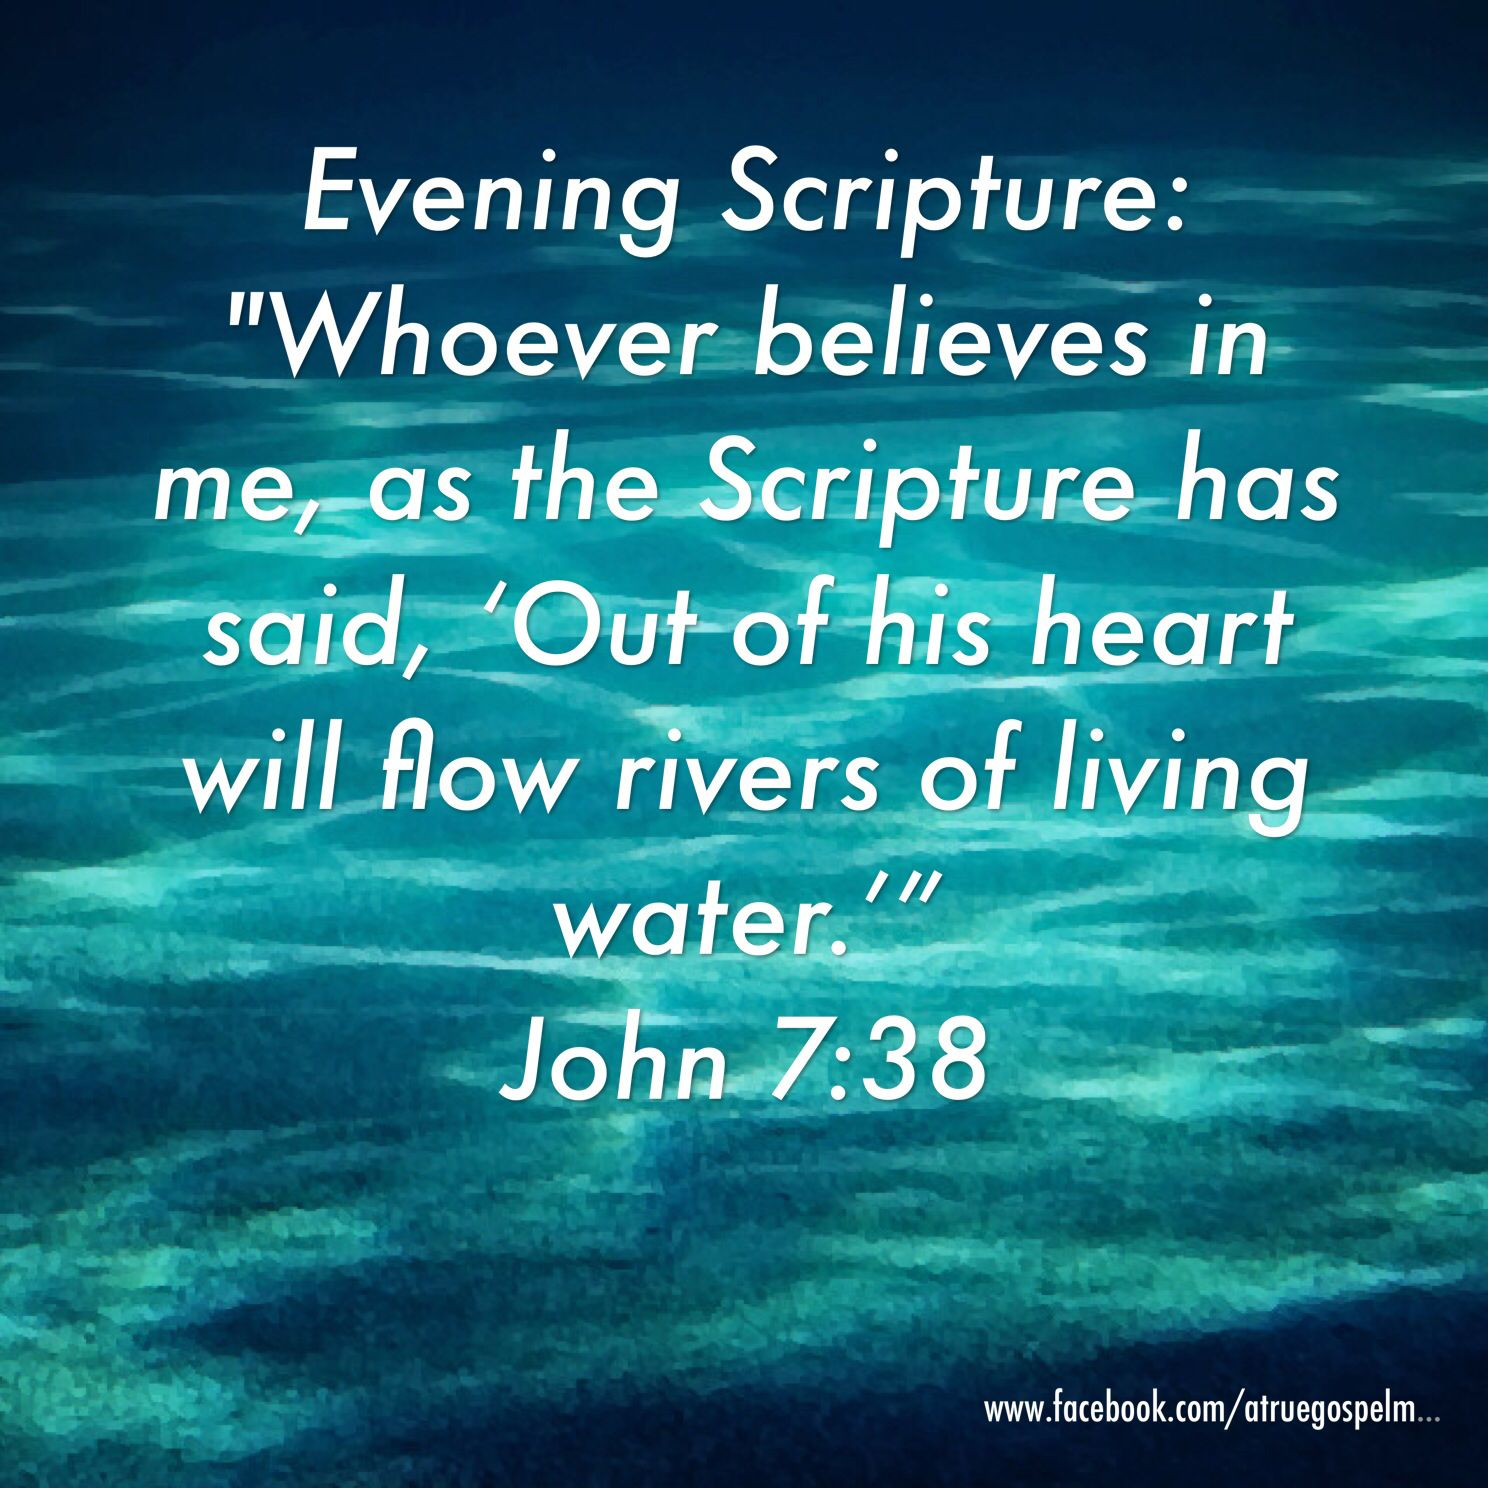 Bible Quotes About Water and Life